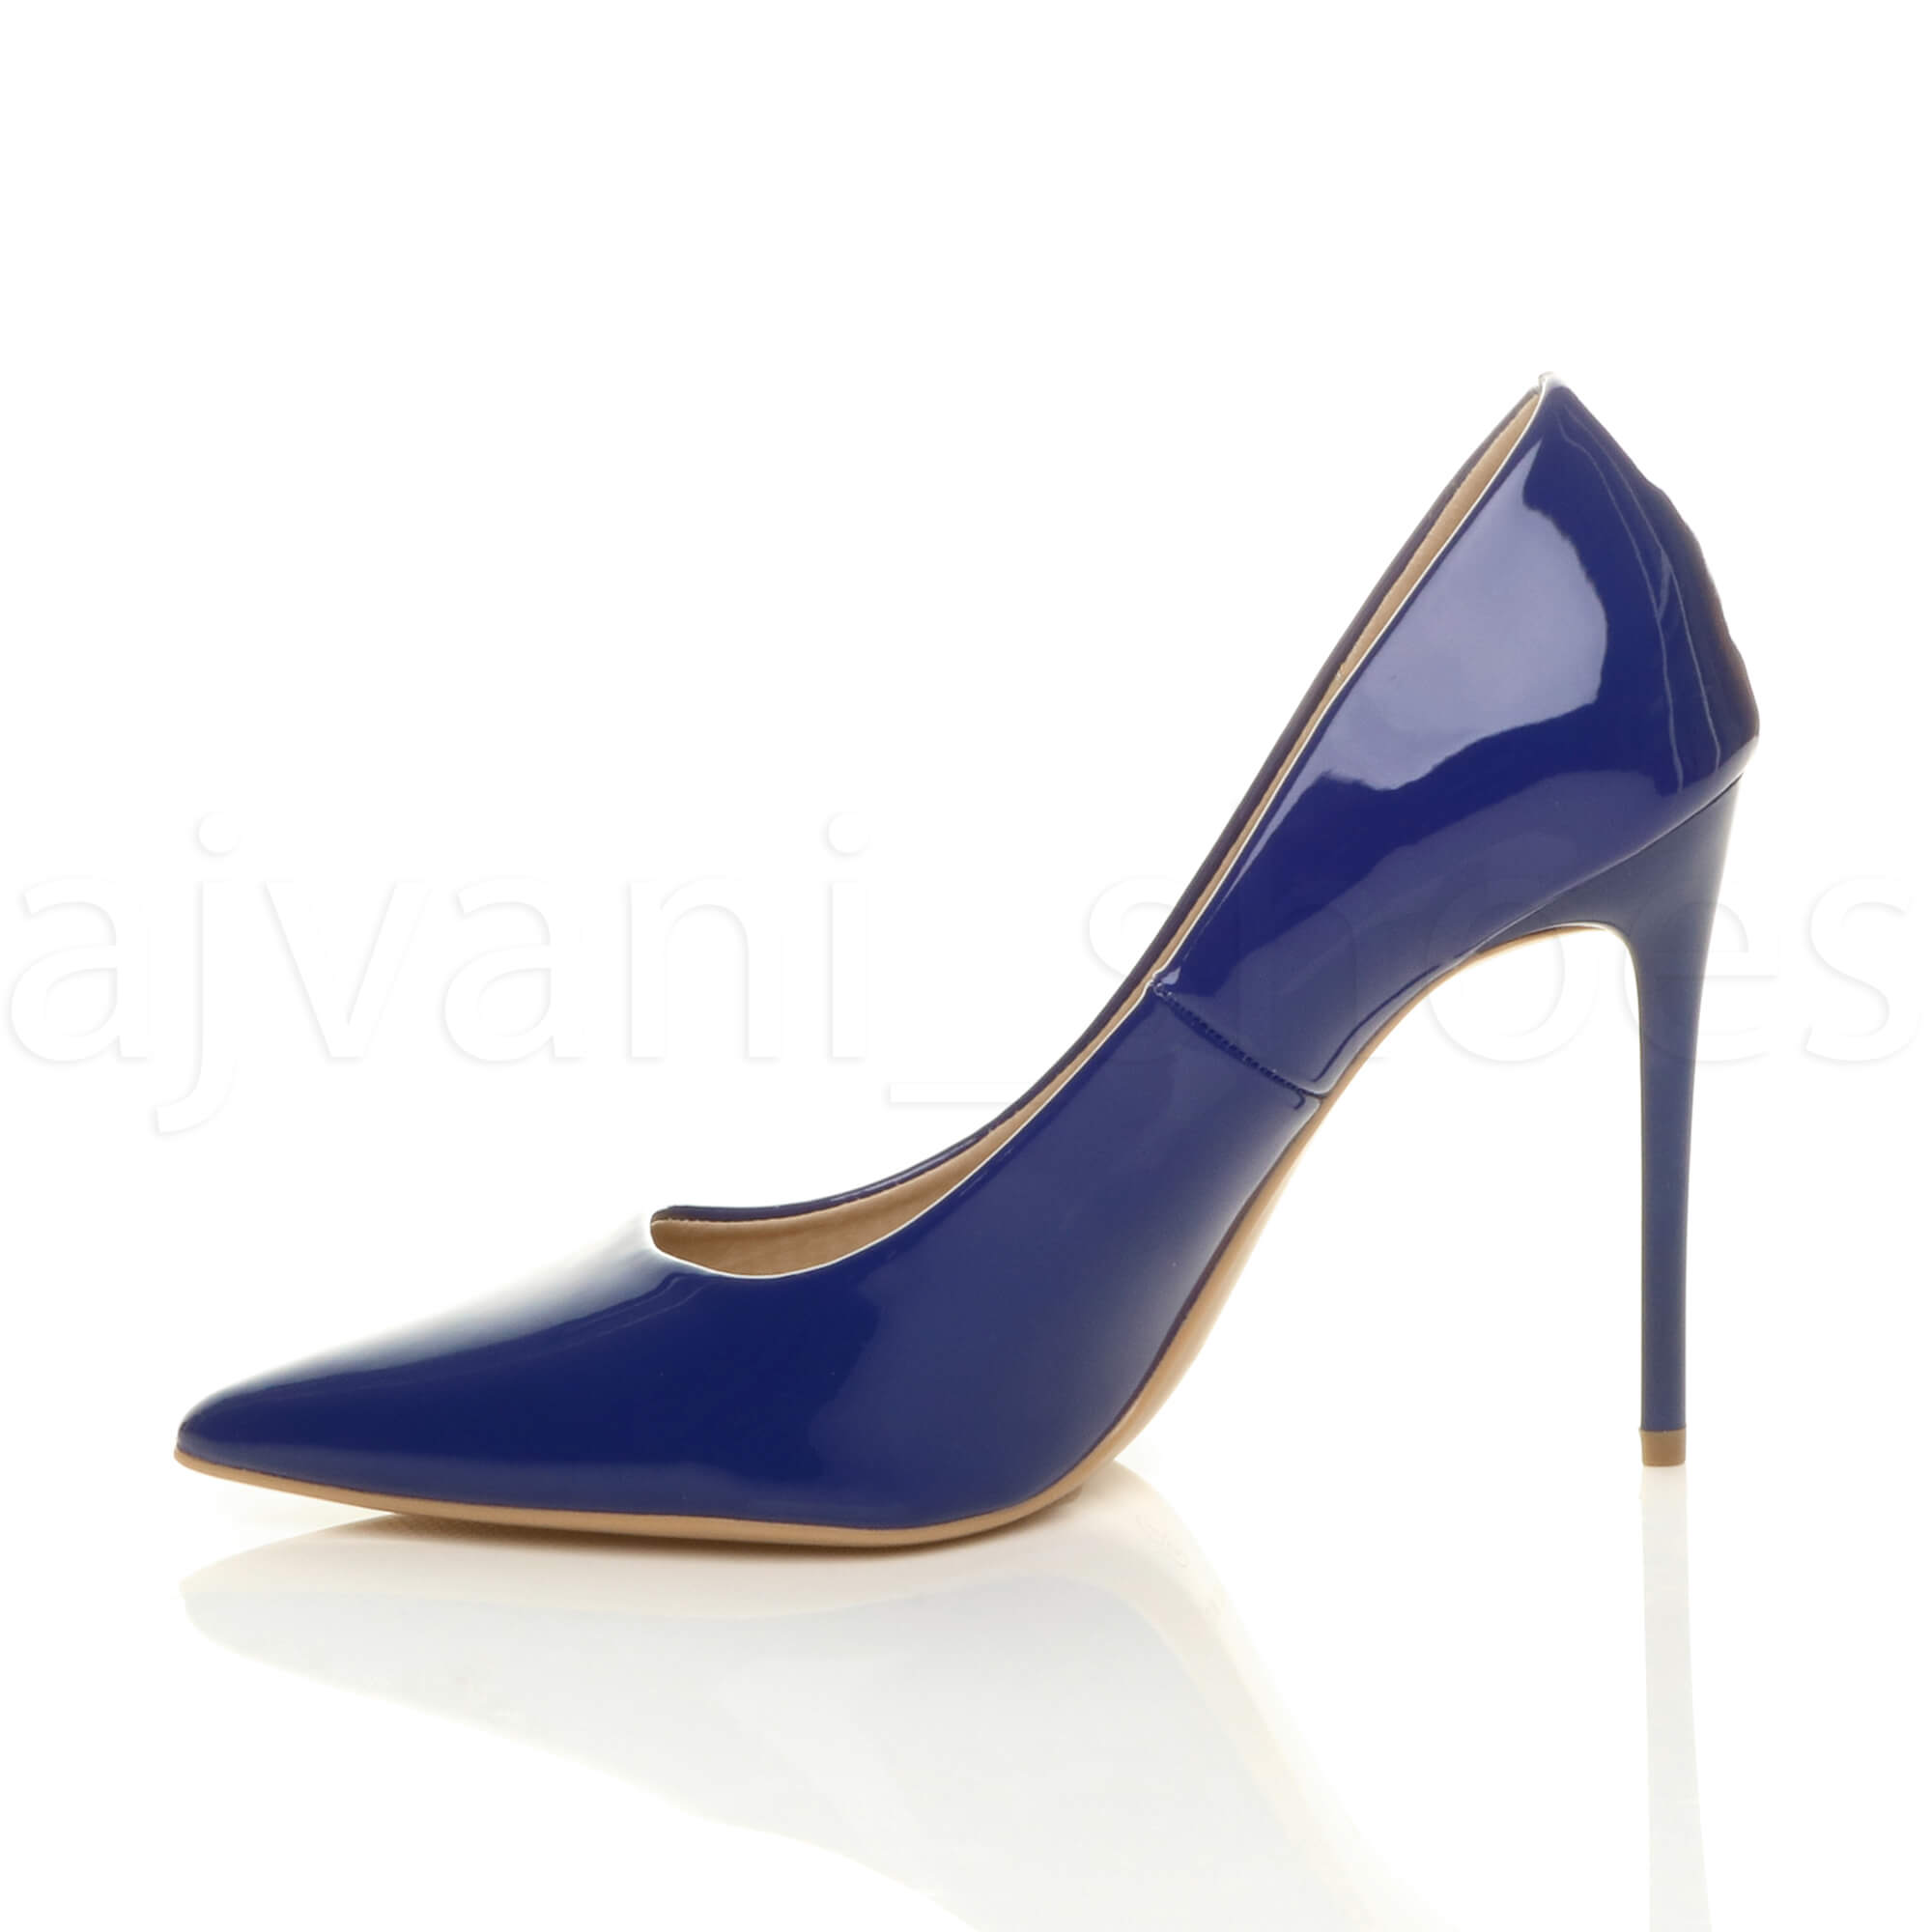 WOMENS-LADIES-HIGH-HEEL-POINTED-CONTRAST-COURT-SMART-PARTY-WORK-SHOES-PUMPS-SIZE thumbnail 52